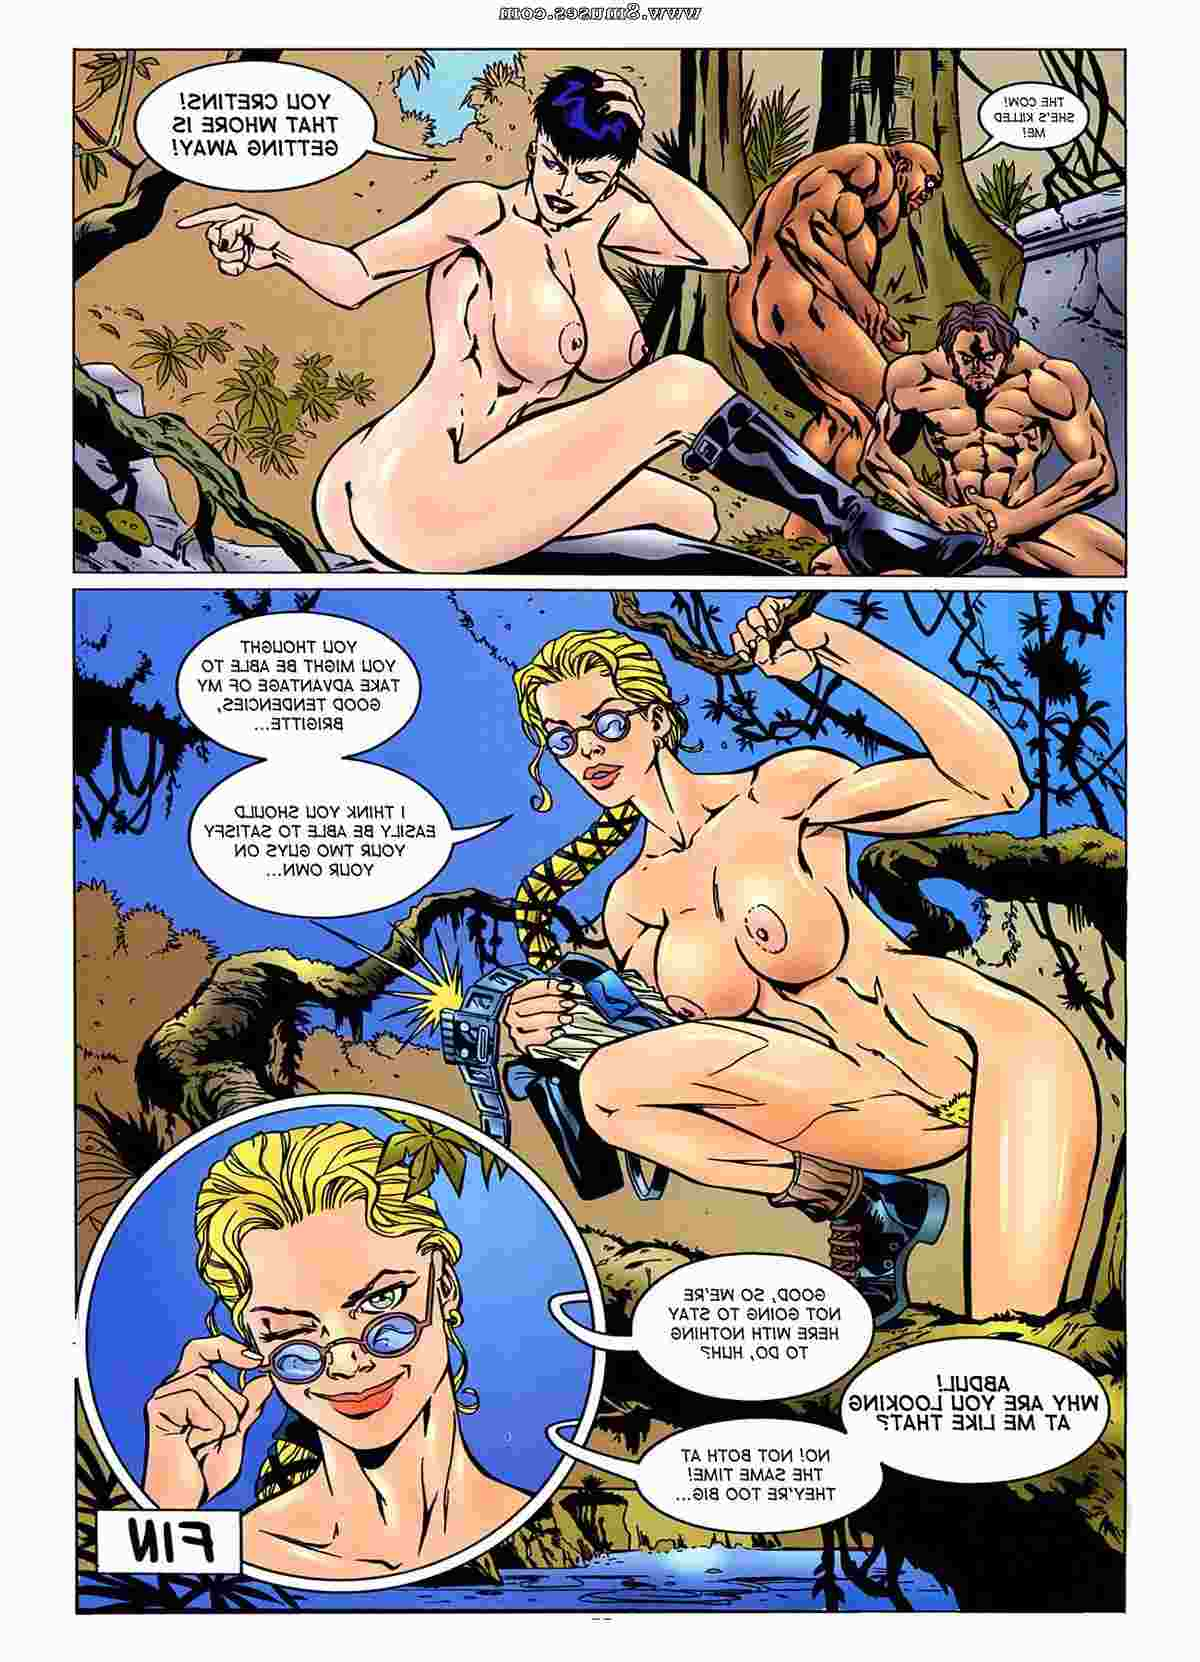 Various-Authors/Paco-Diaz/Lara-Jones-The-Final-Penetration Lara_Jones_-_The_Final_Penetration__8muses_-_Sex_and_Porn_Comics_5.jpg